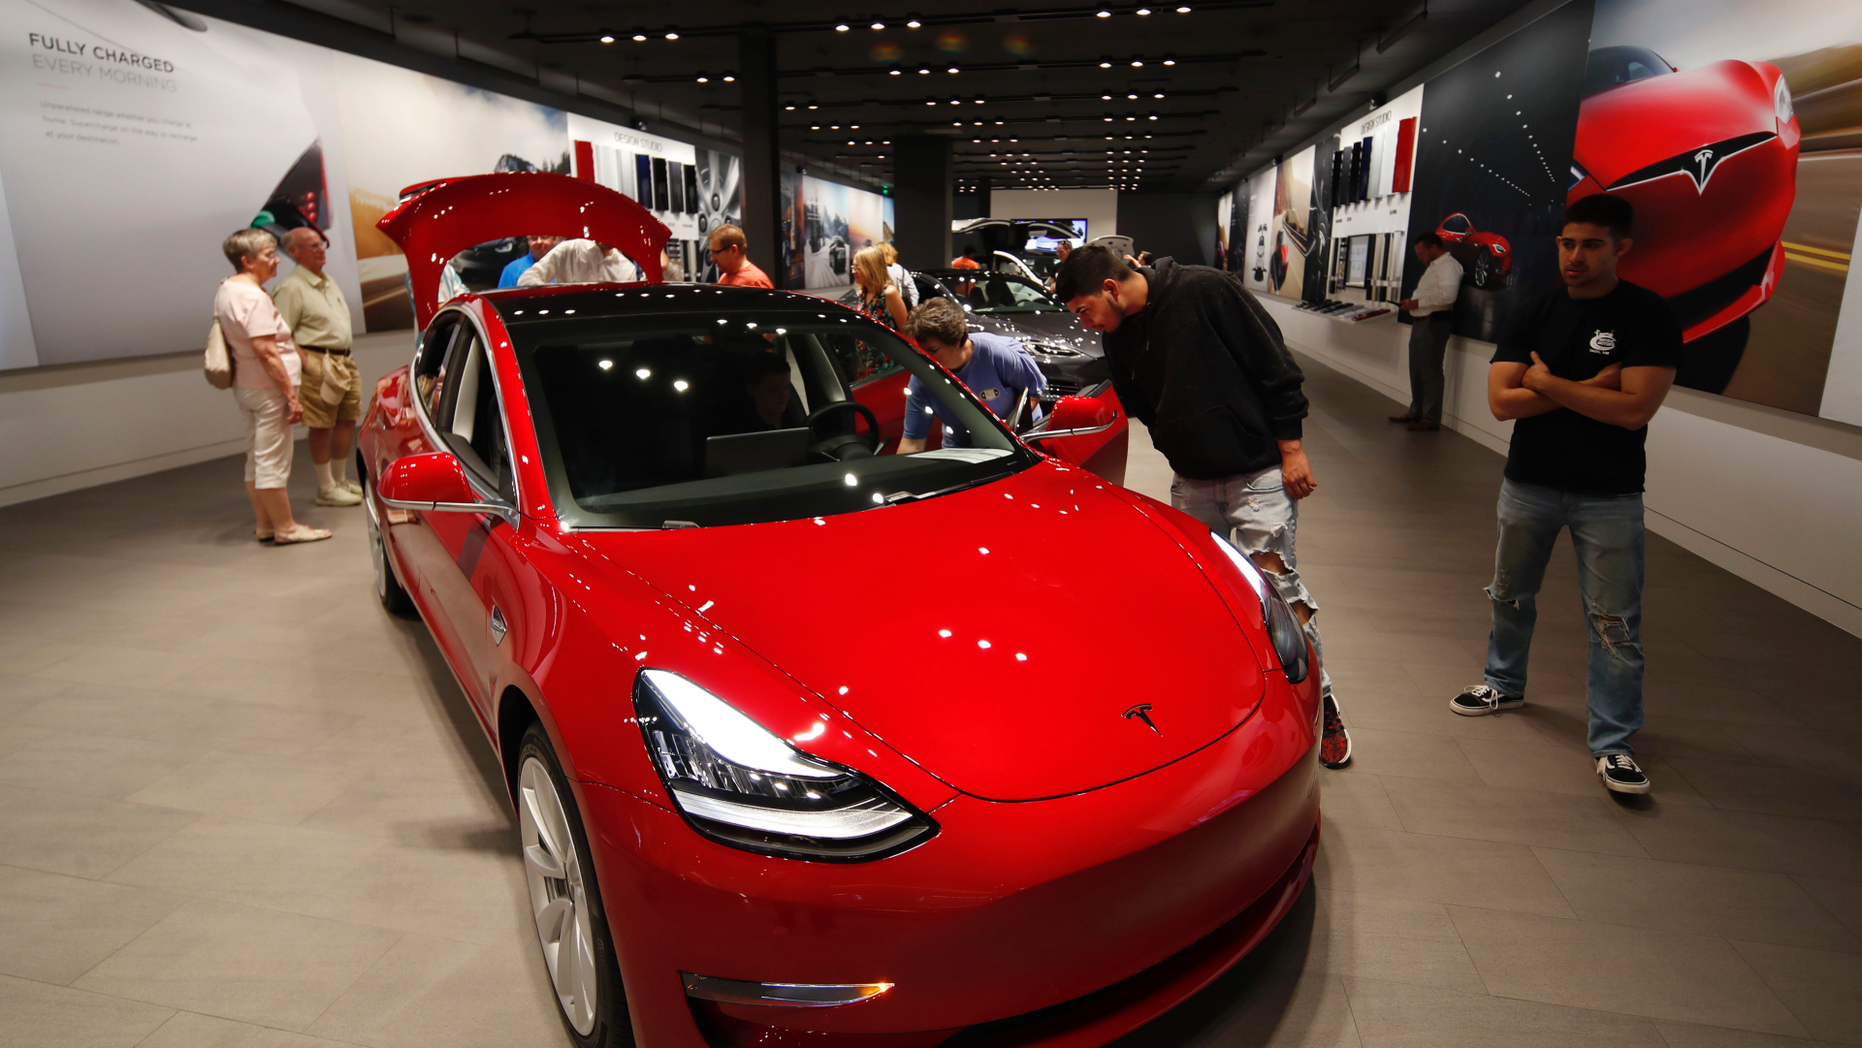 Tesla to increase vehicle prices, keep more stores open